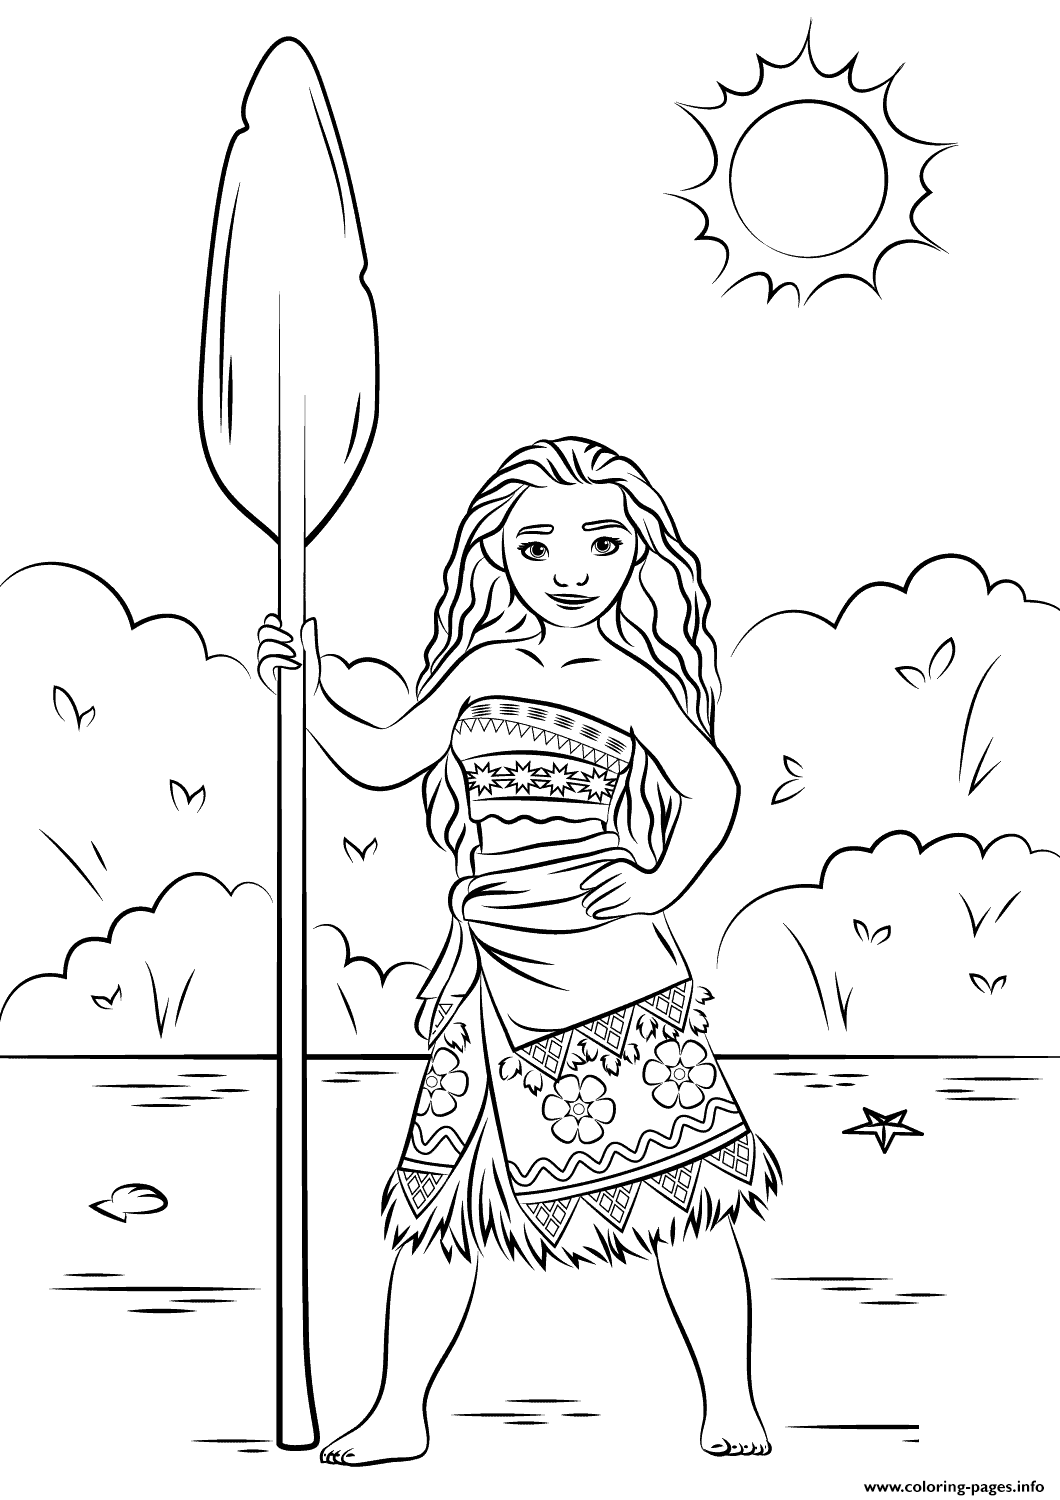 Print Princess Moana Disney Coloring Pages Disney Princess Coloring Pages Moana Coloring Pages Princess Coloring Pages